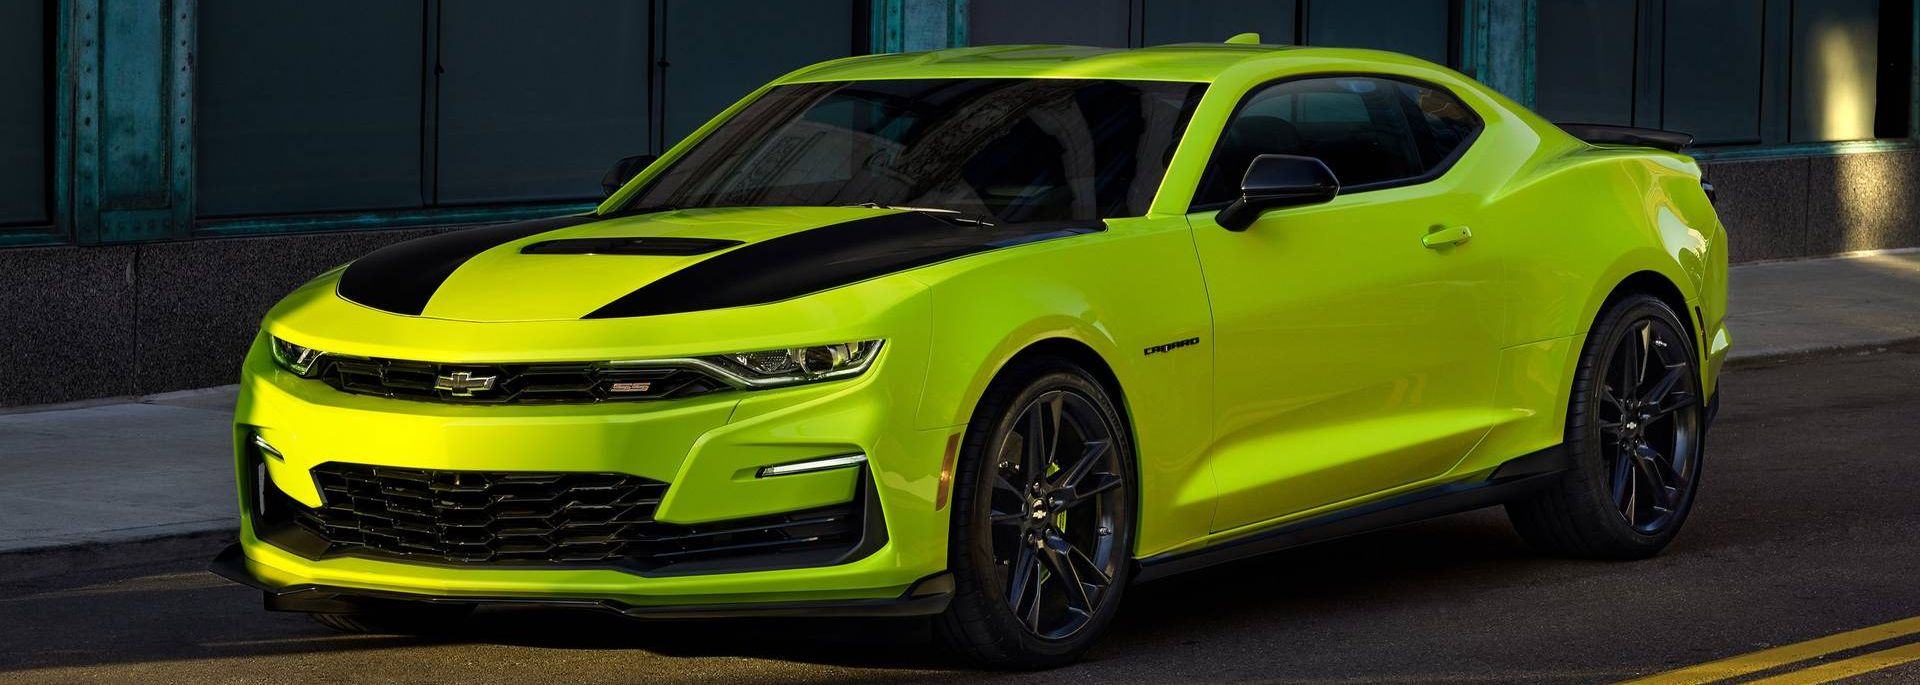 2019 Chevrolet Camaro for Sale near Schererville, IN